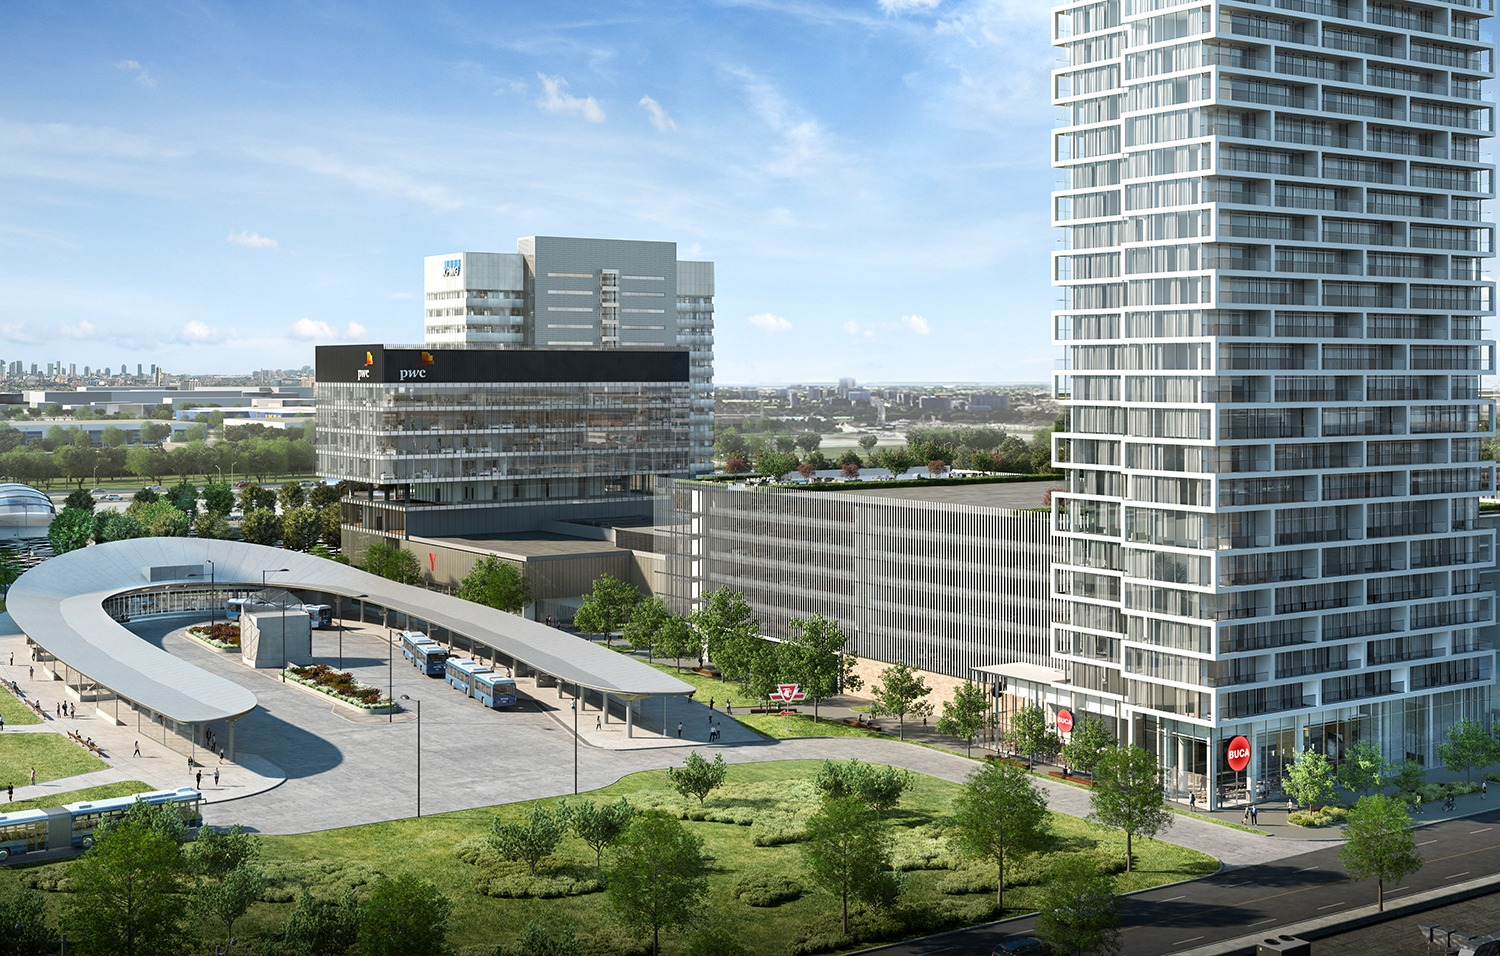 Vaughan, part of the 905 family, is shedding its traditional suburban image and becoming urbanized. One catalyst for the transformation is Transit City condos, which will stand 55 storeys tall and be steps from the newest TTC subway station as well as a regional bus terminal. (Rendering courtesy of CentreCourt Developments)